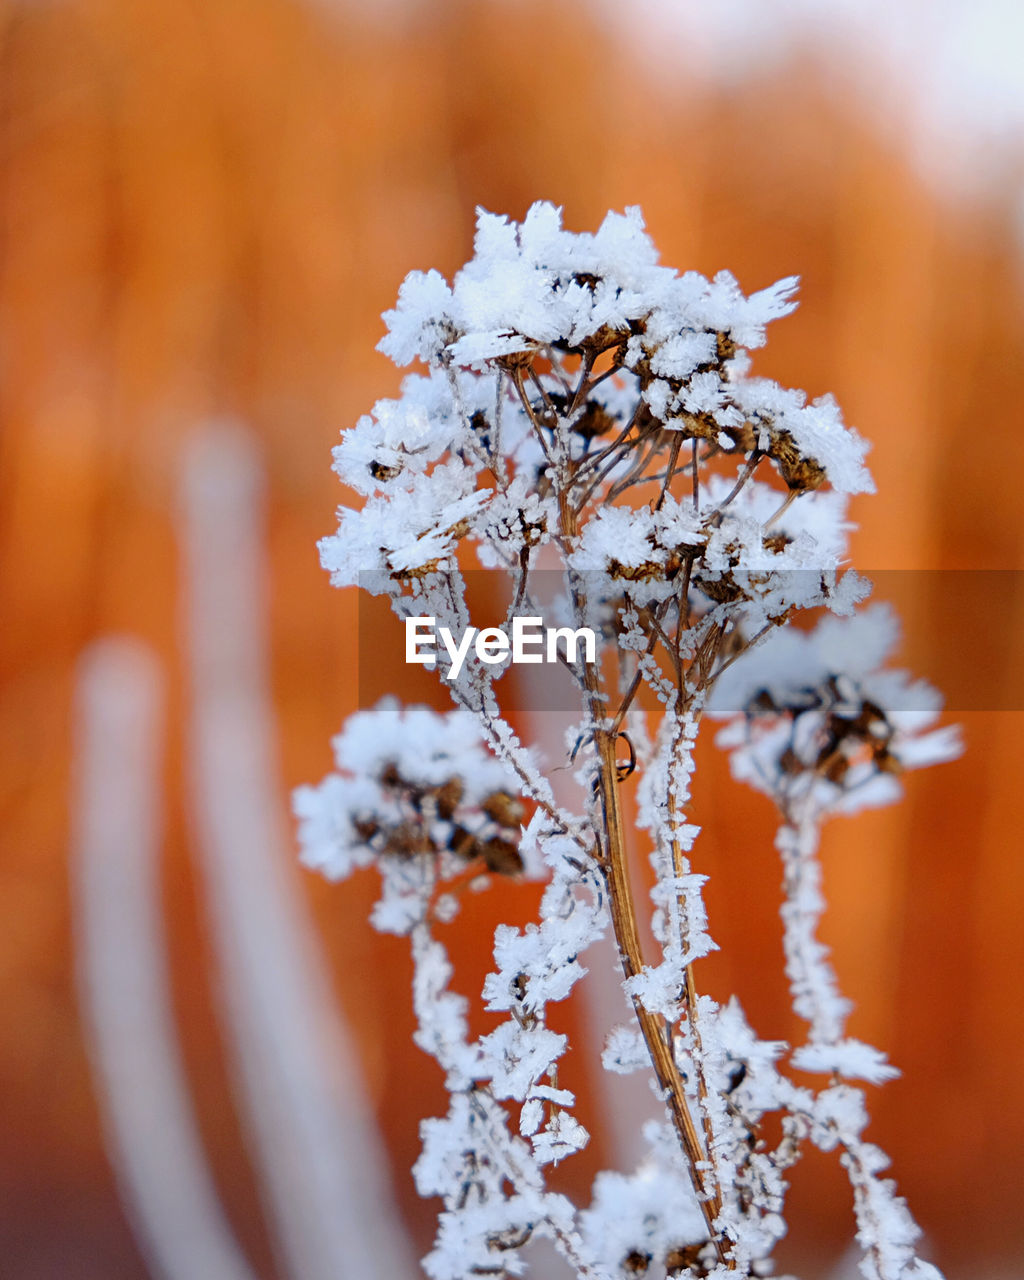 CLOSE-UP OF SNOW COVERED PLANT DURING WINTER